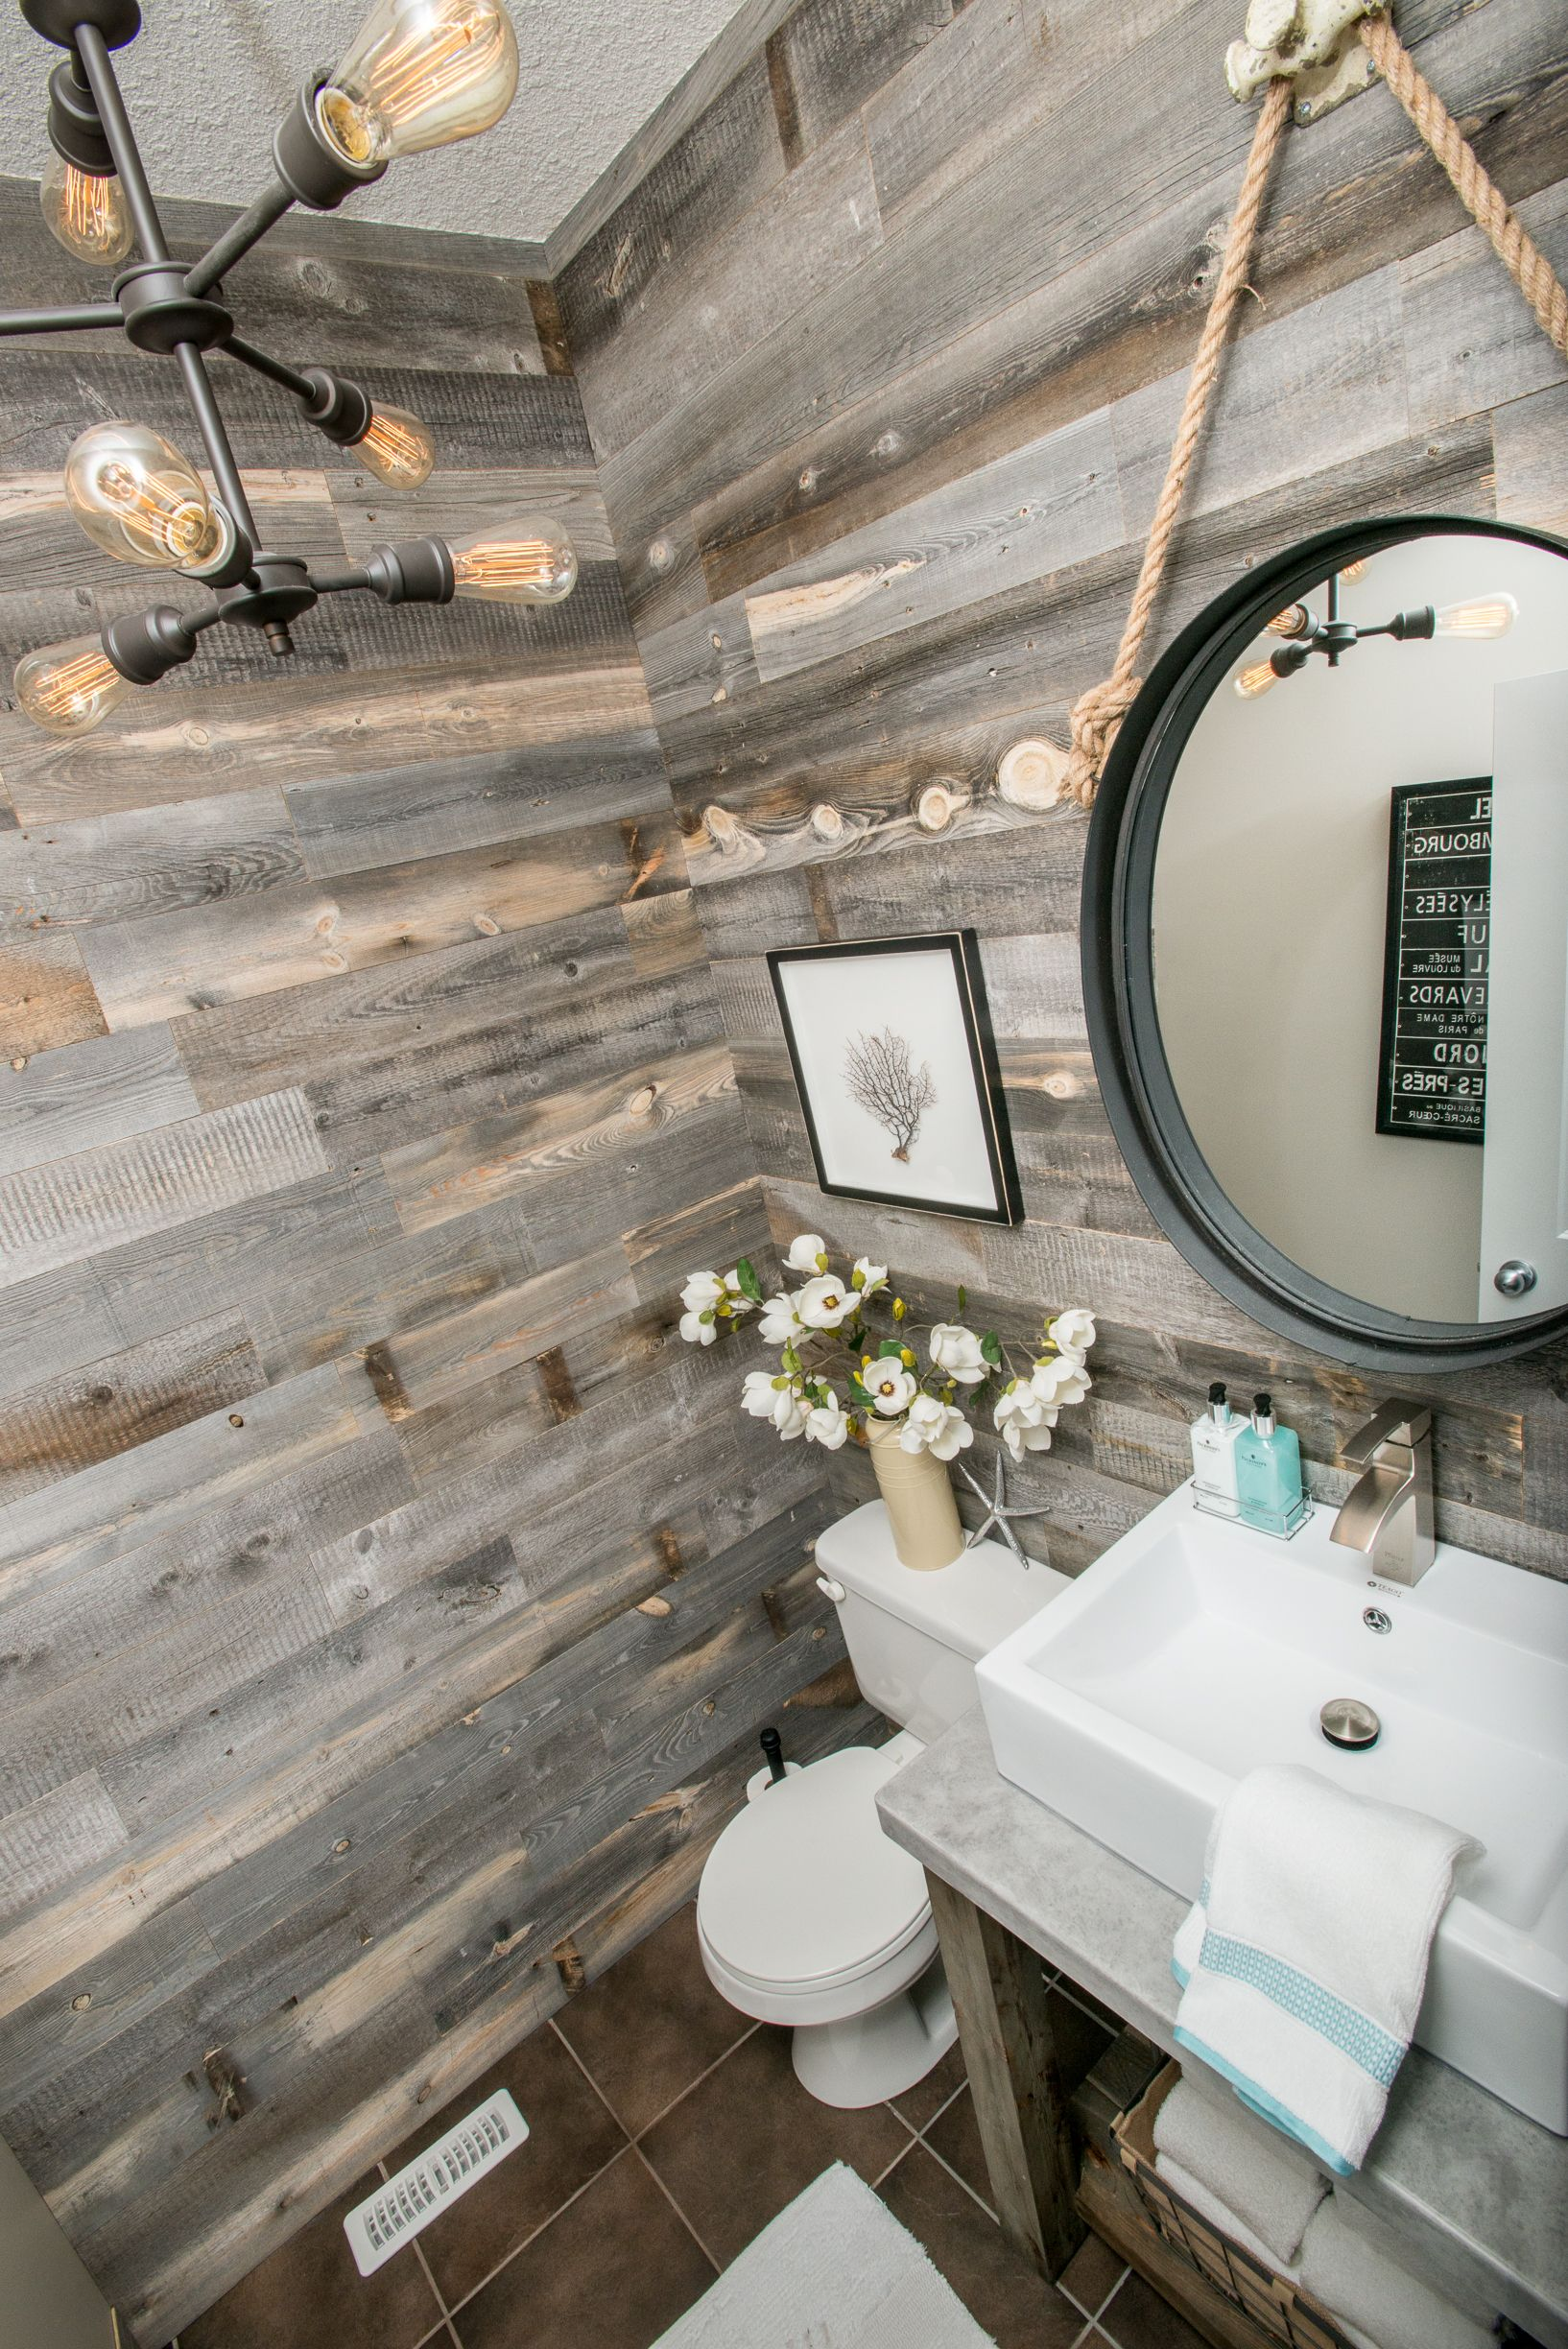 Reclaimed Weathered Wood | Accent wall designs, Interior ...